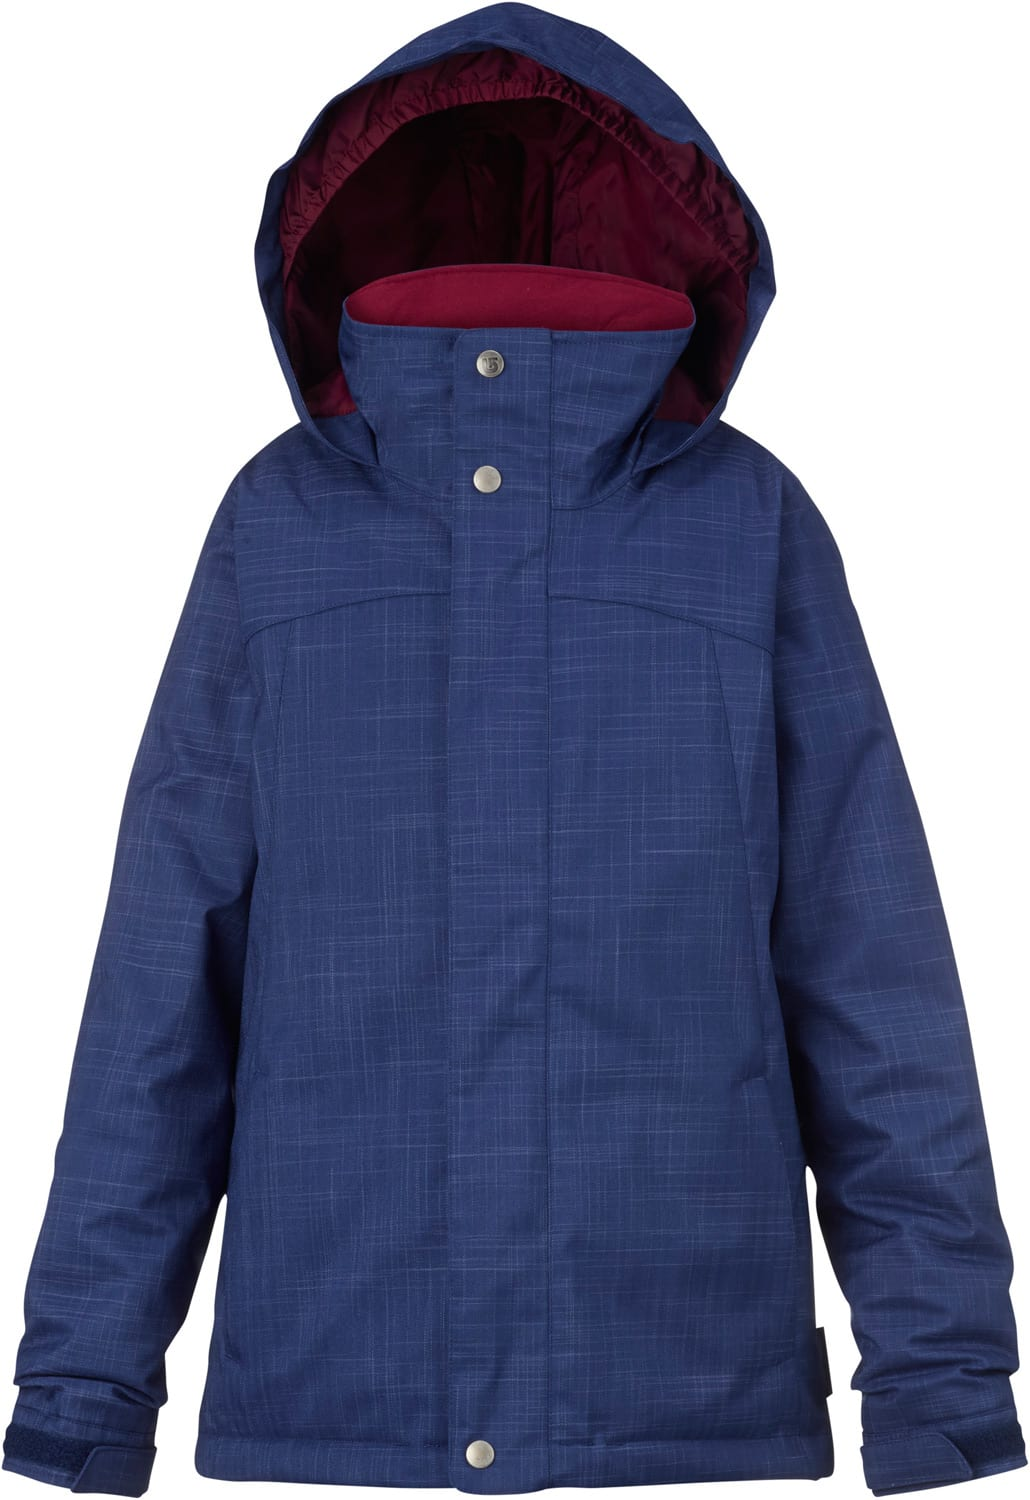 on sale burton elodie snowboard jacket girls up to 40 off